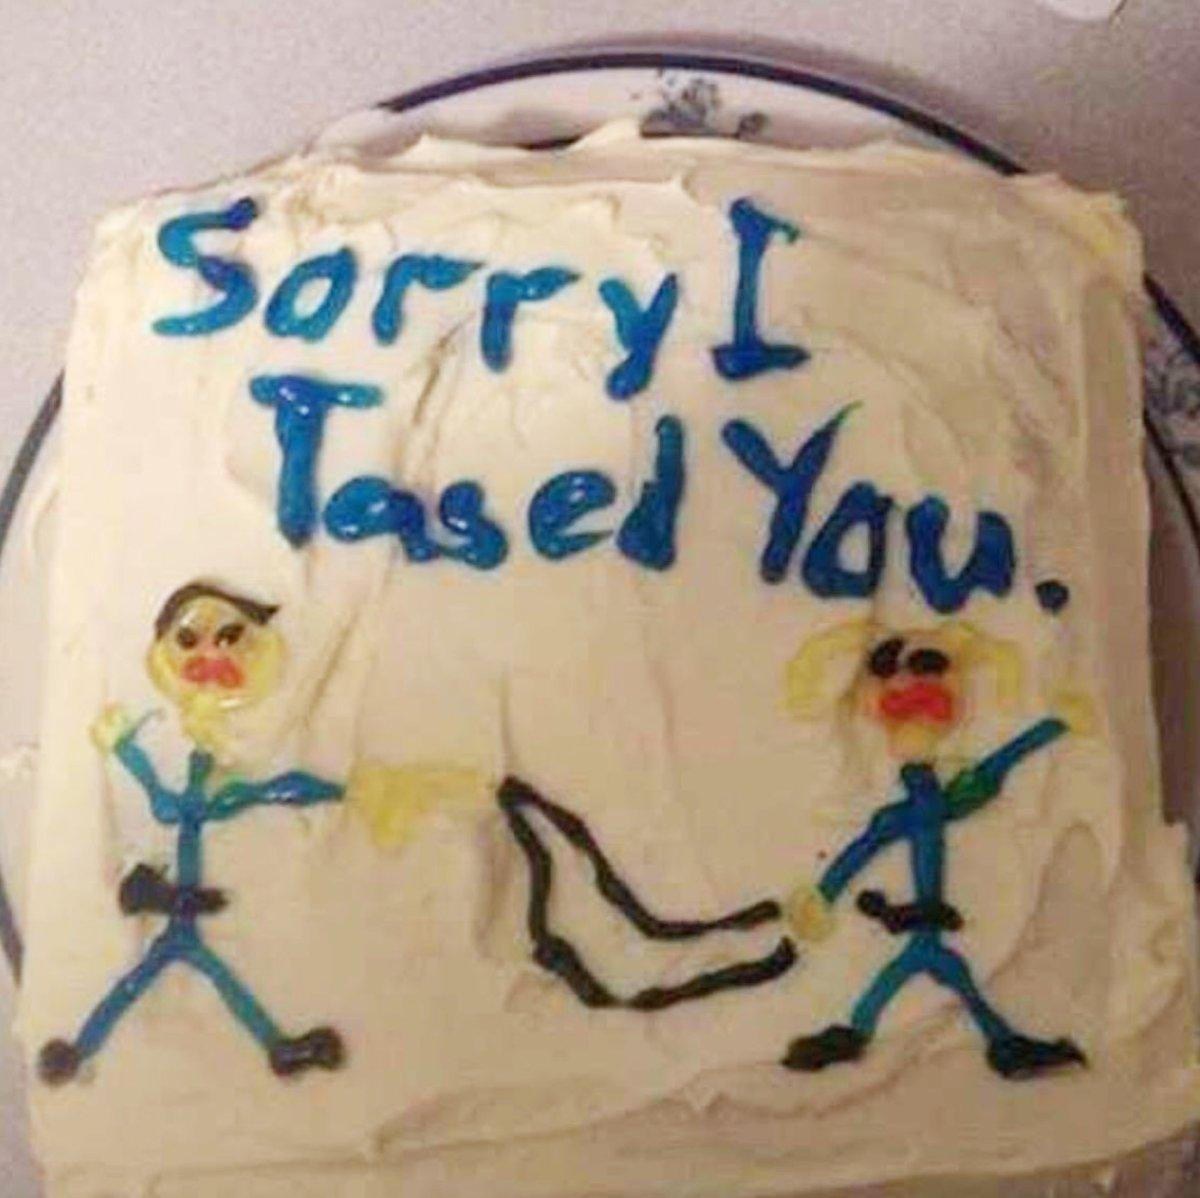 Woman Says Cop Tried To Apologize With 'Sorry I Tased You' Cake